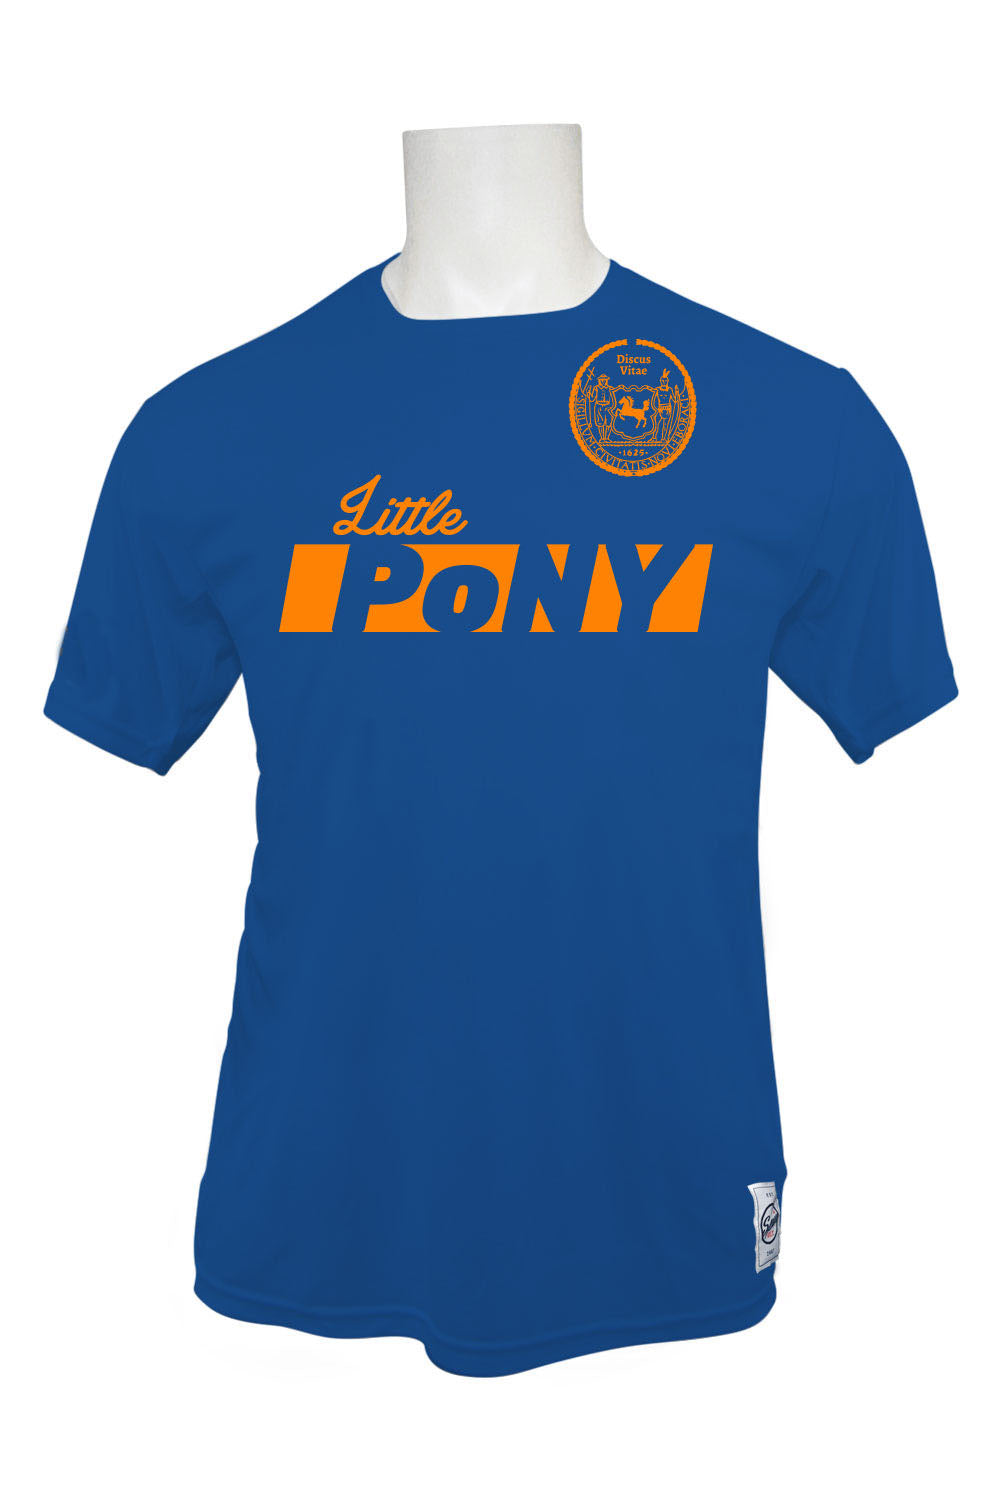 Little PoNY Short Sleeve Jersey (Royal)